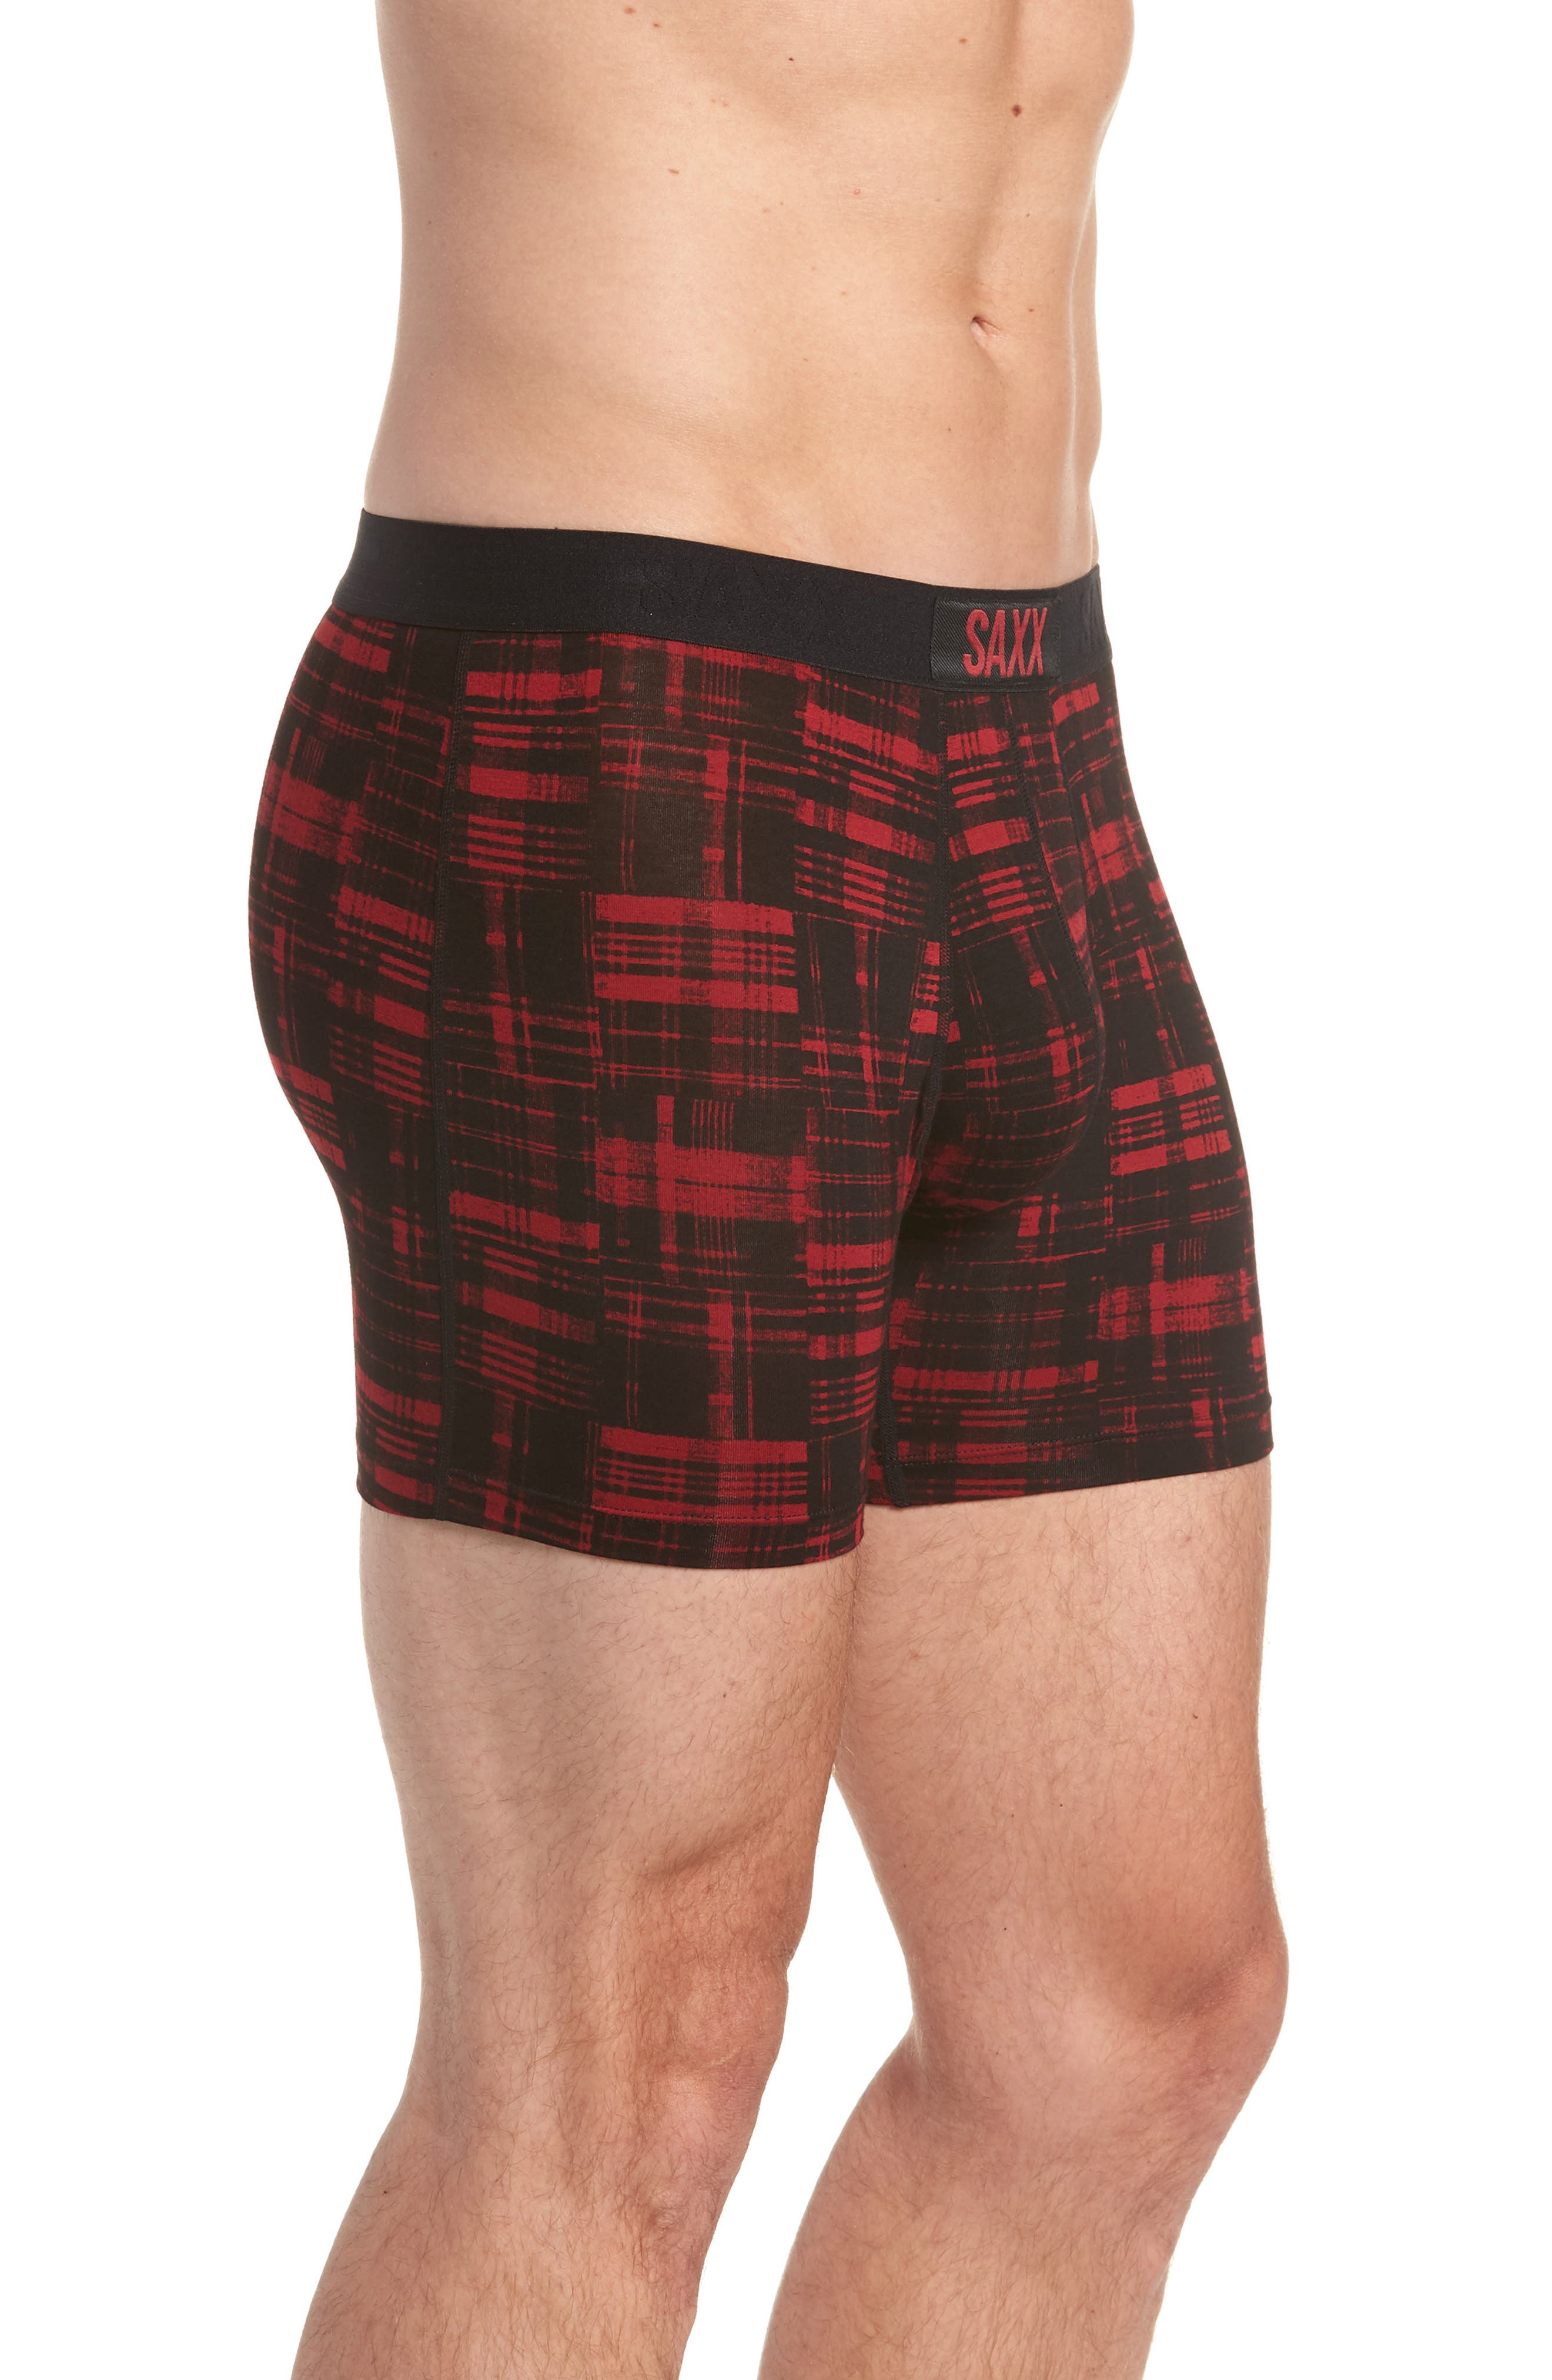 SAXX,                             Vibe Boxer Briefs,                             Alternate thumbnail 3, color,                             RED PATCHED PLAID